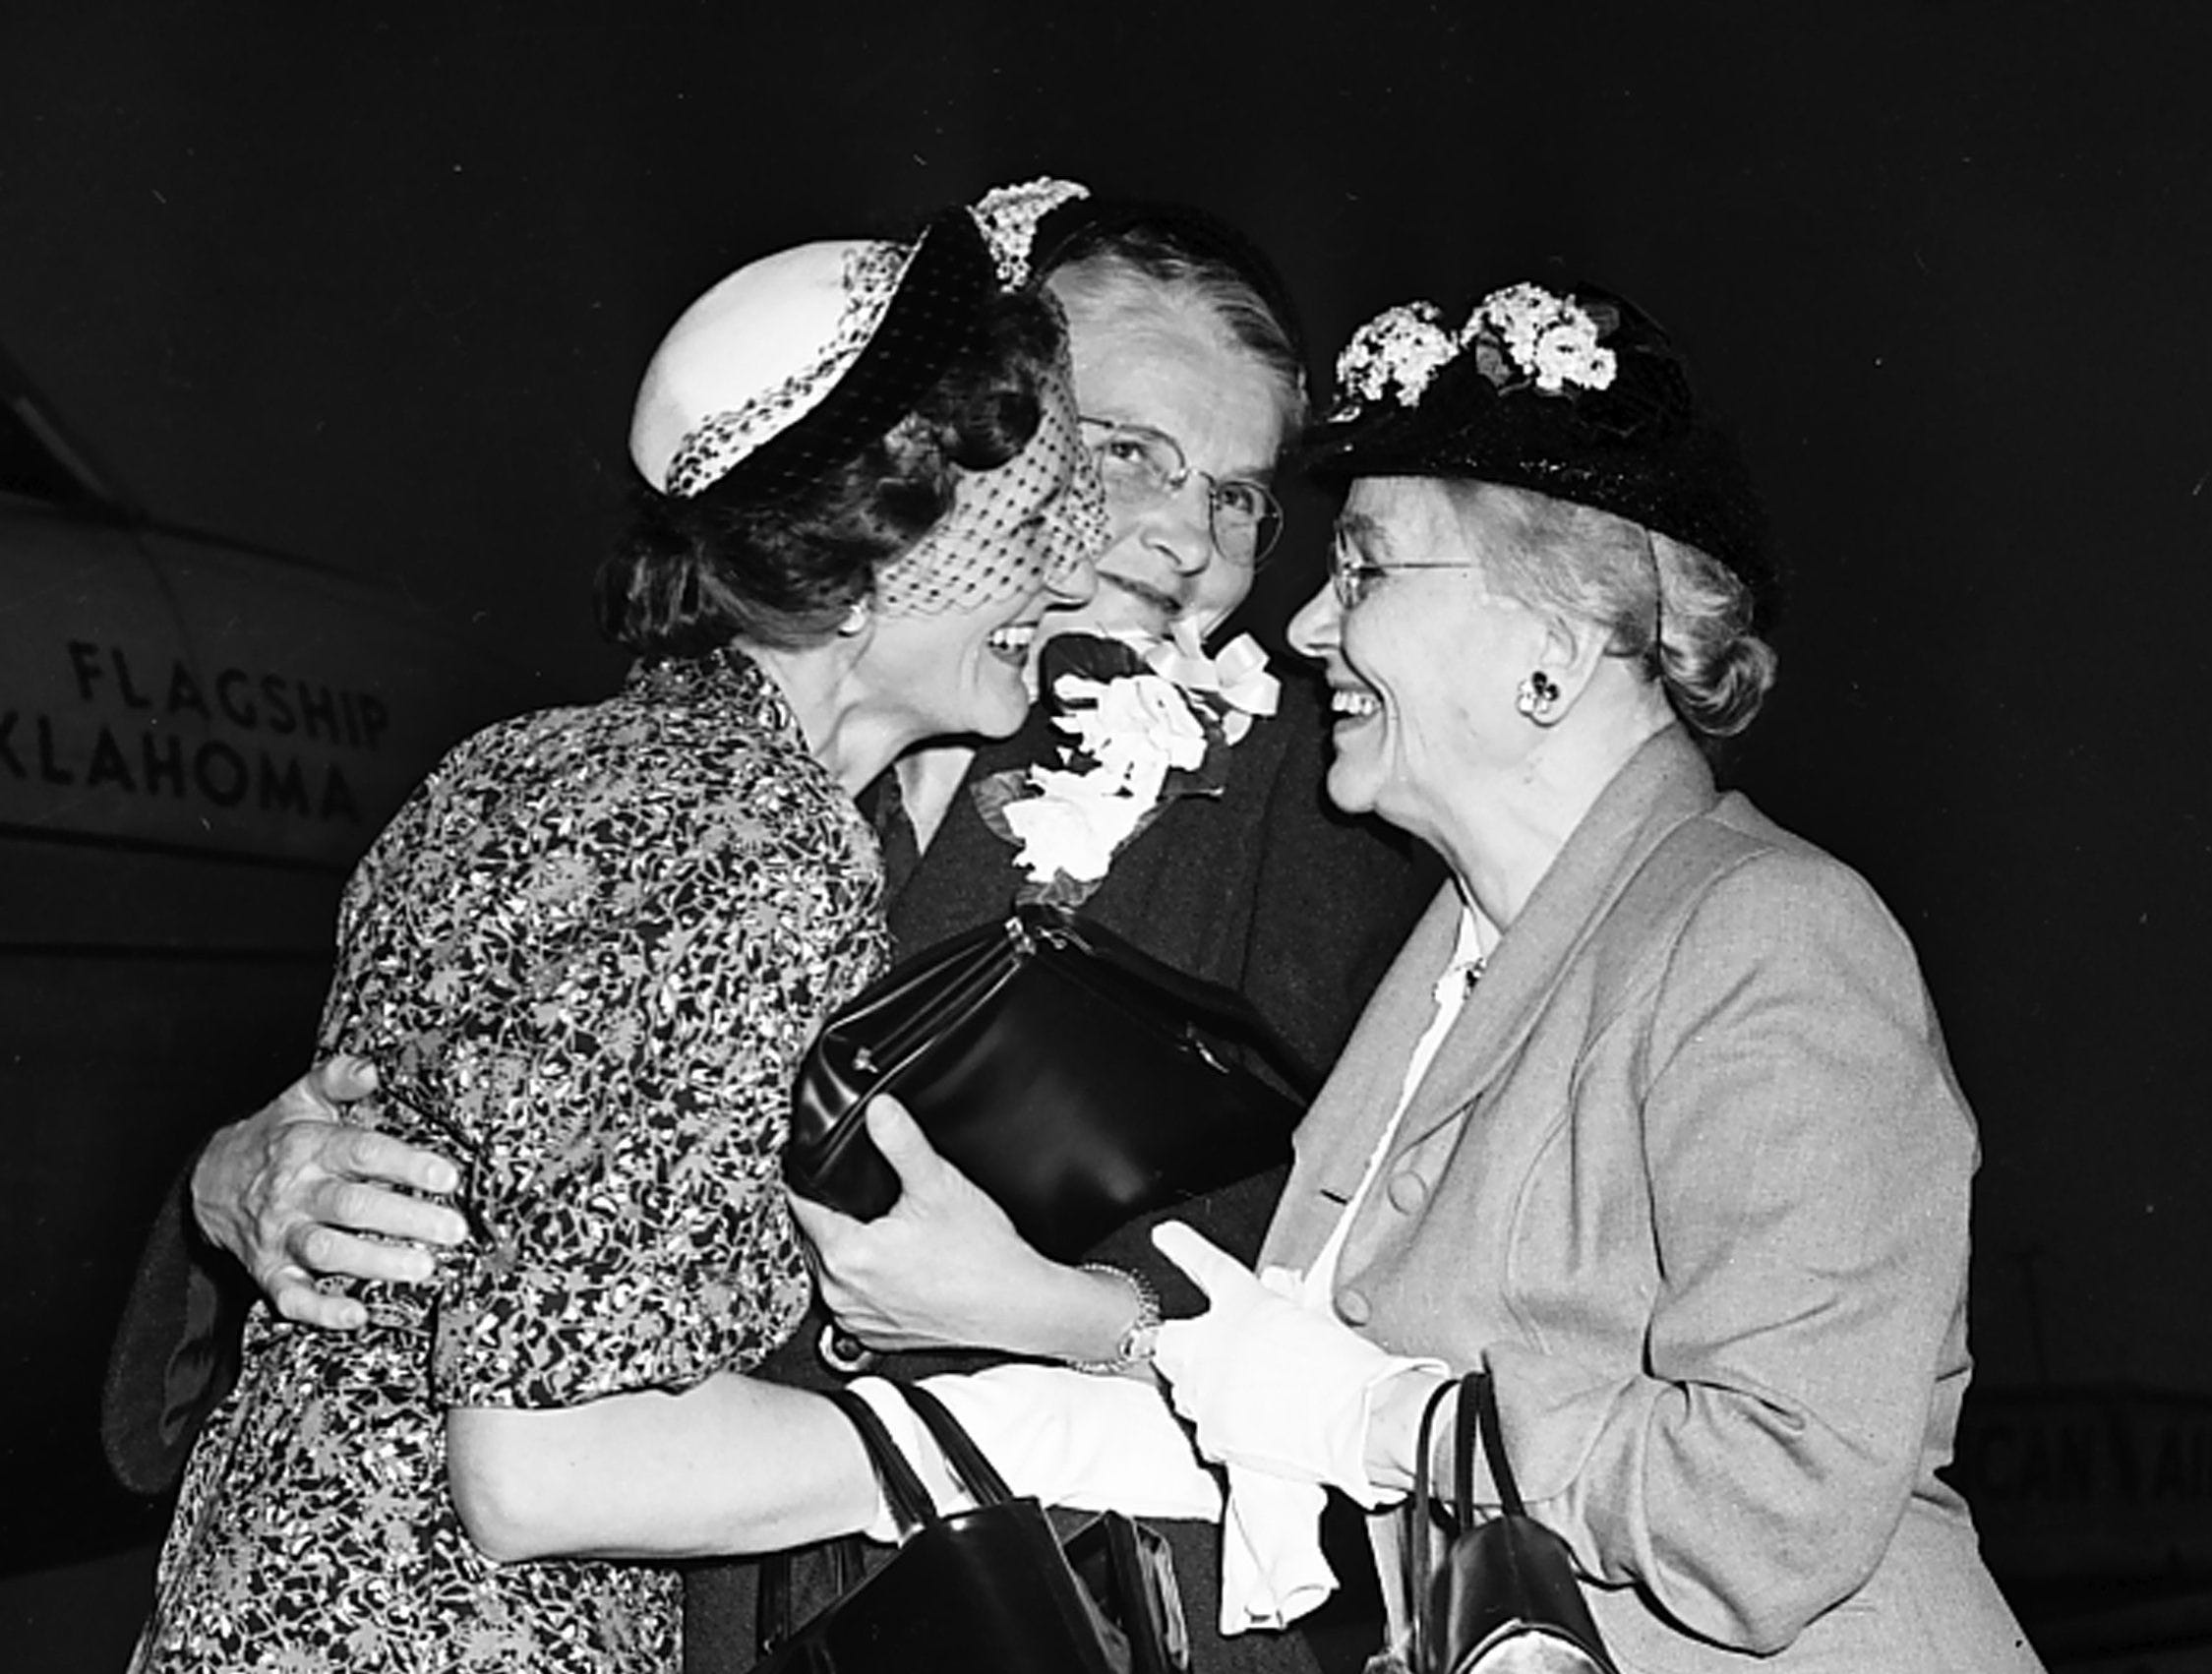 Miss Nellie A. Dyer, center, recently freed from a North Korean prison camp, is hugged by her cousin, Mrs. Mary Angus, left, and Mrs. P.H. Pierce, a longtime friend, as she stopped at Municipal Airport in May 1953. Miss Dyer, a Methodist missionary, was held by the Reds for two years and 10 months. She stopped here en route to her home in Conway, Arkansas. Mrs. Angus lives at 1311 Tutwiler and Mrs. Pierce at 1352 Carr.